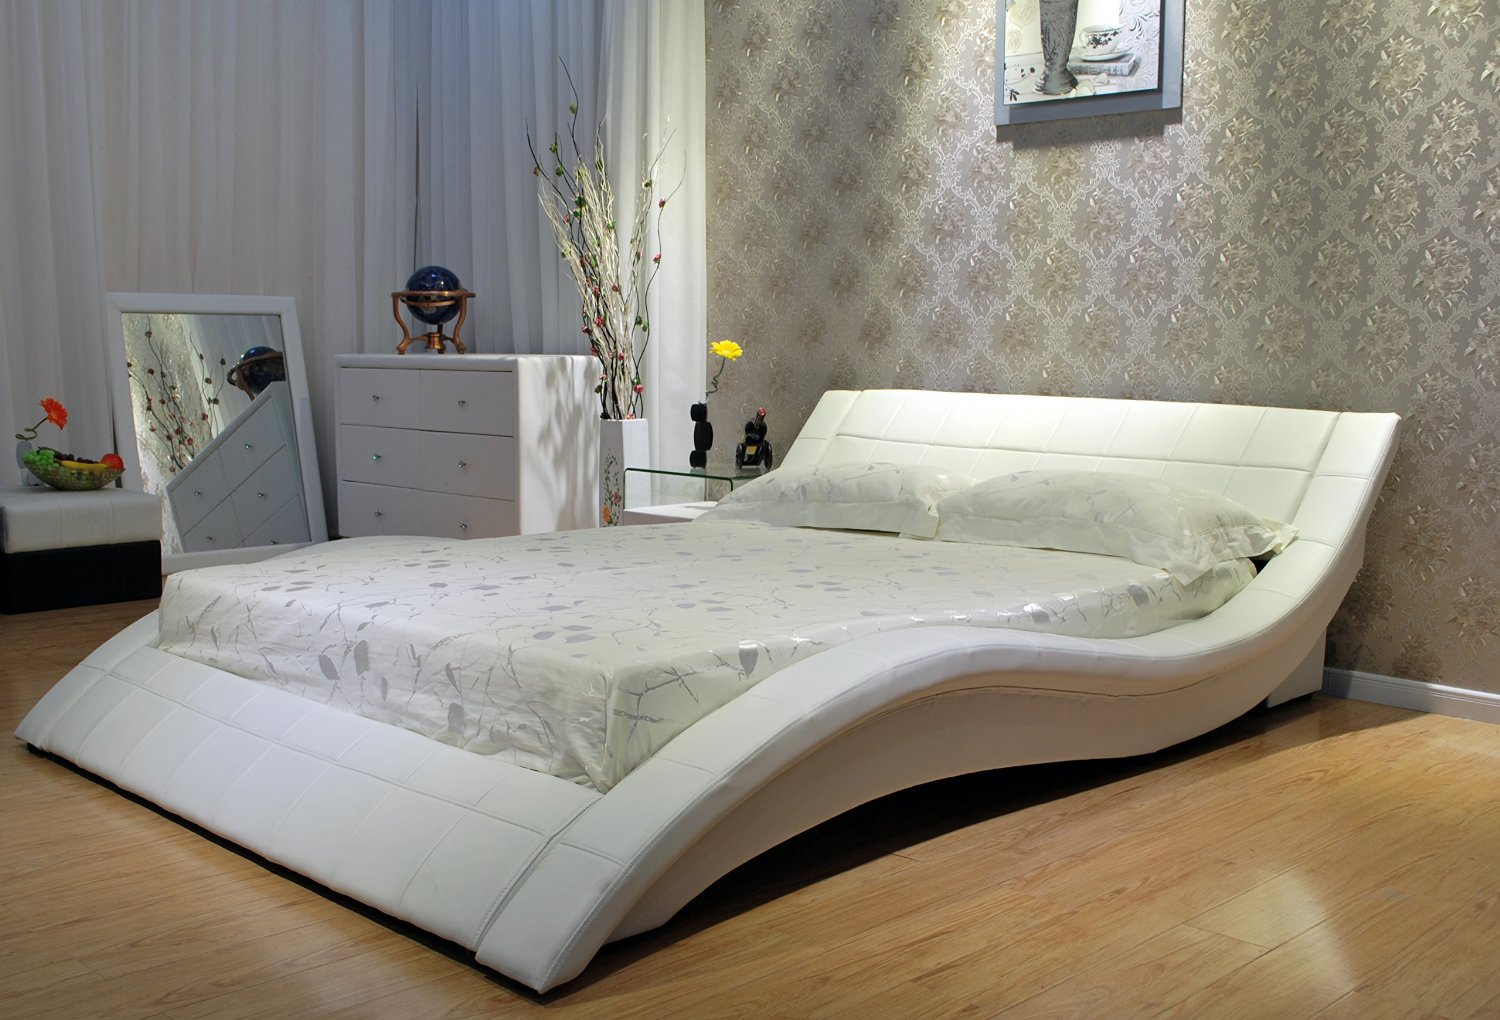 Wave White Leather Bed Las Vegas Furniture Store